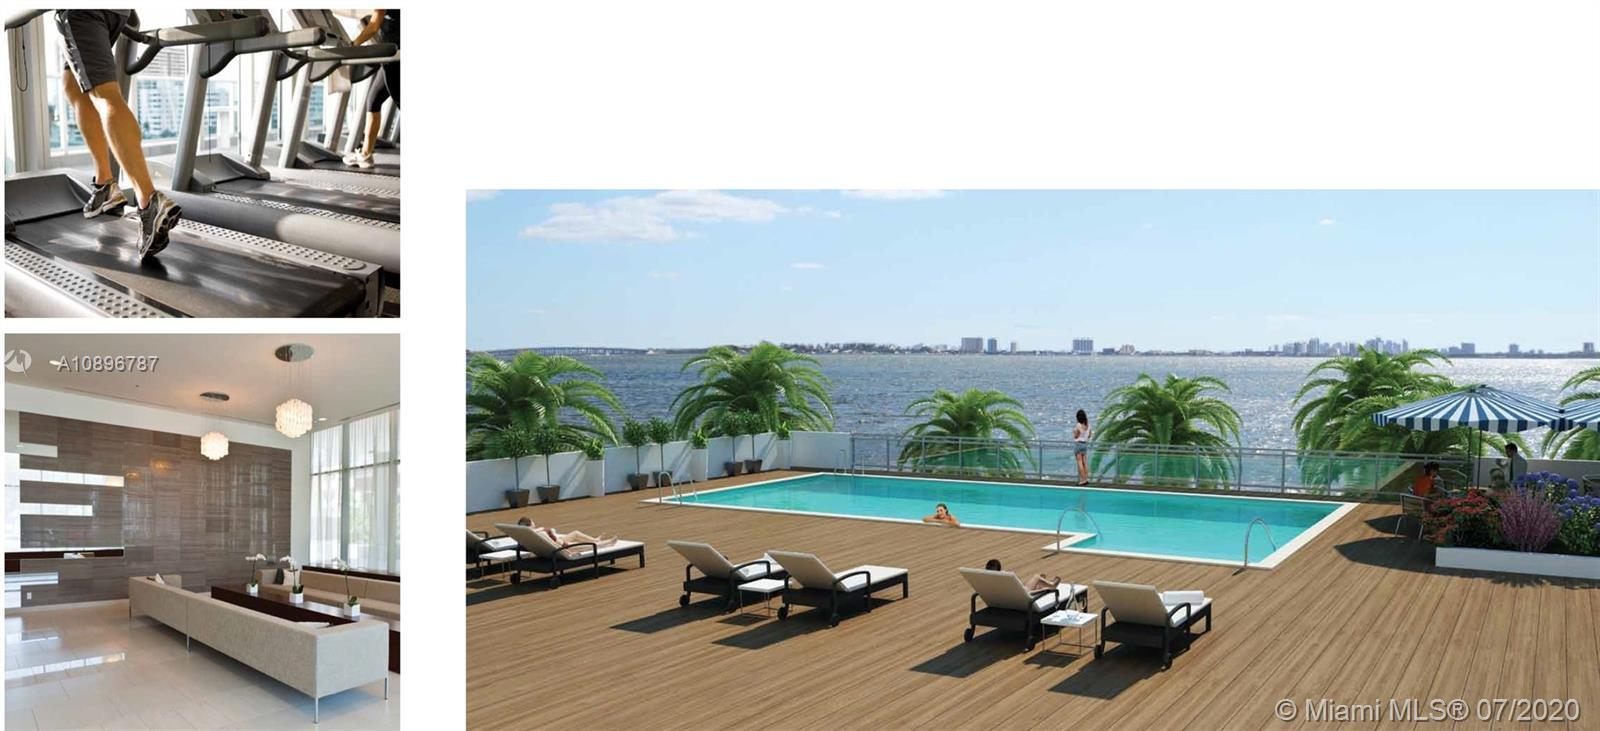 23 Biscayne Bay - Condos for sale